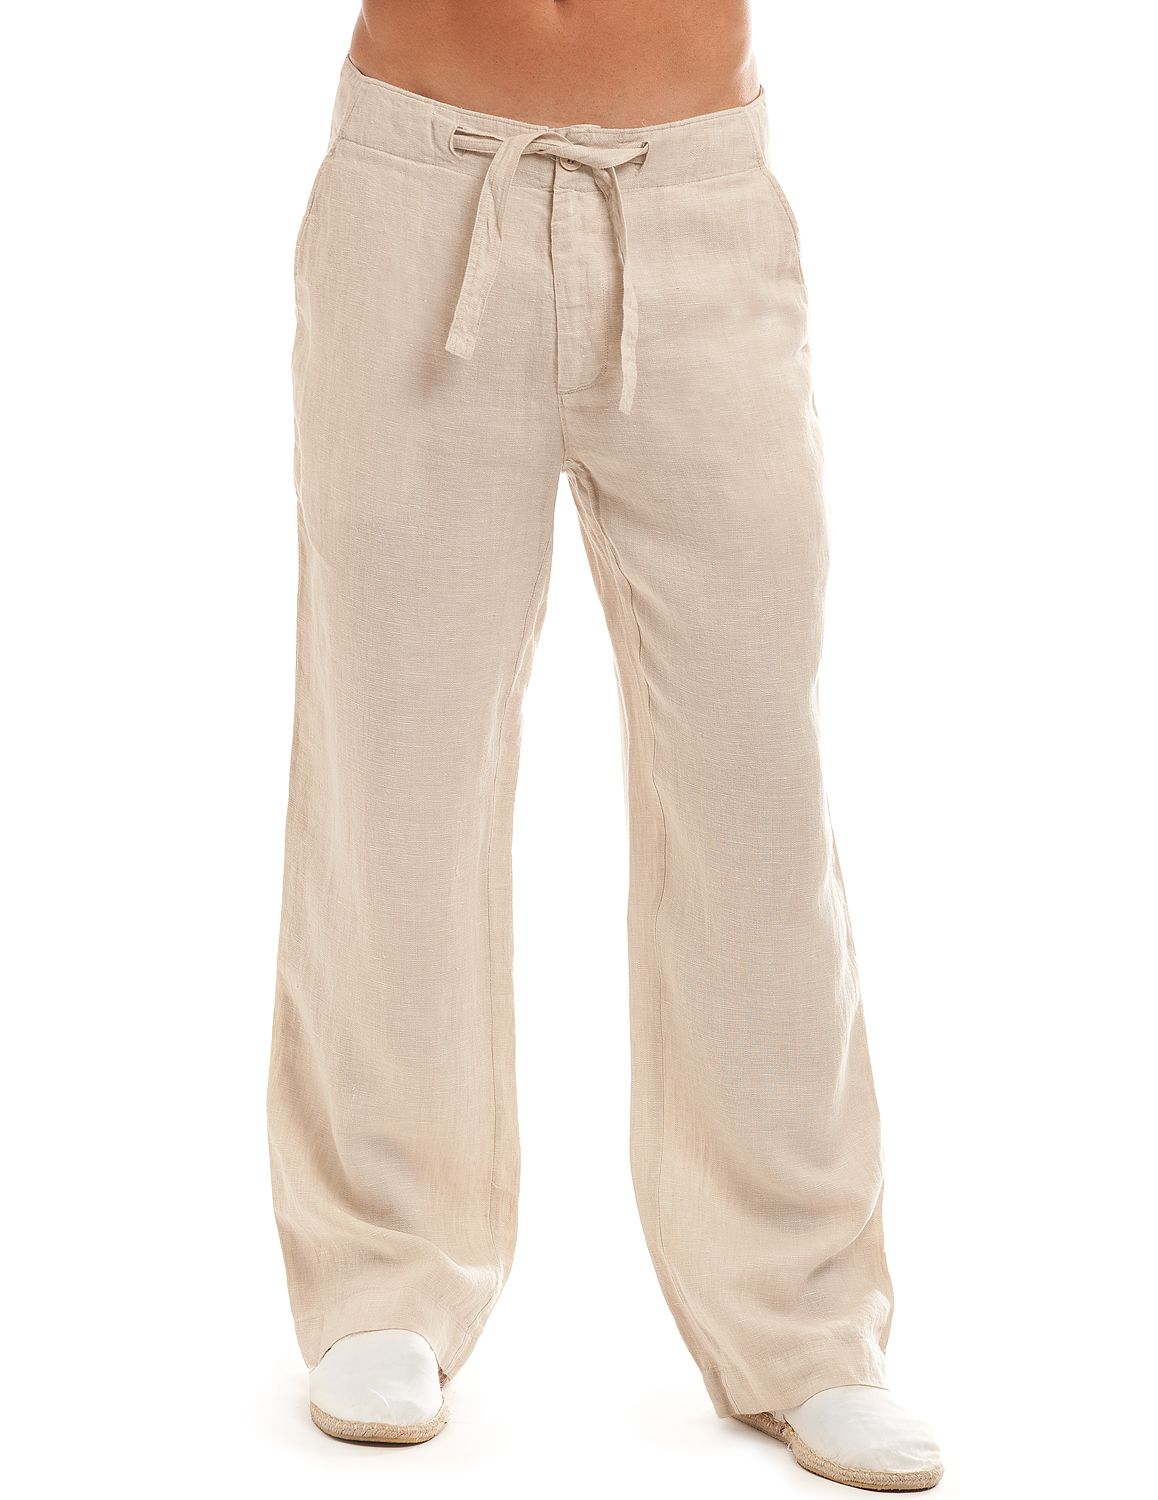 Camel Linen Beachcomber Pants | Men's beach clothes | Pinterest ...